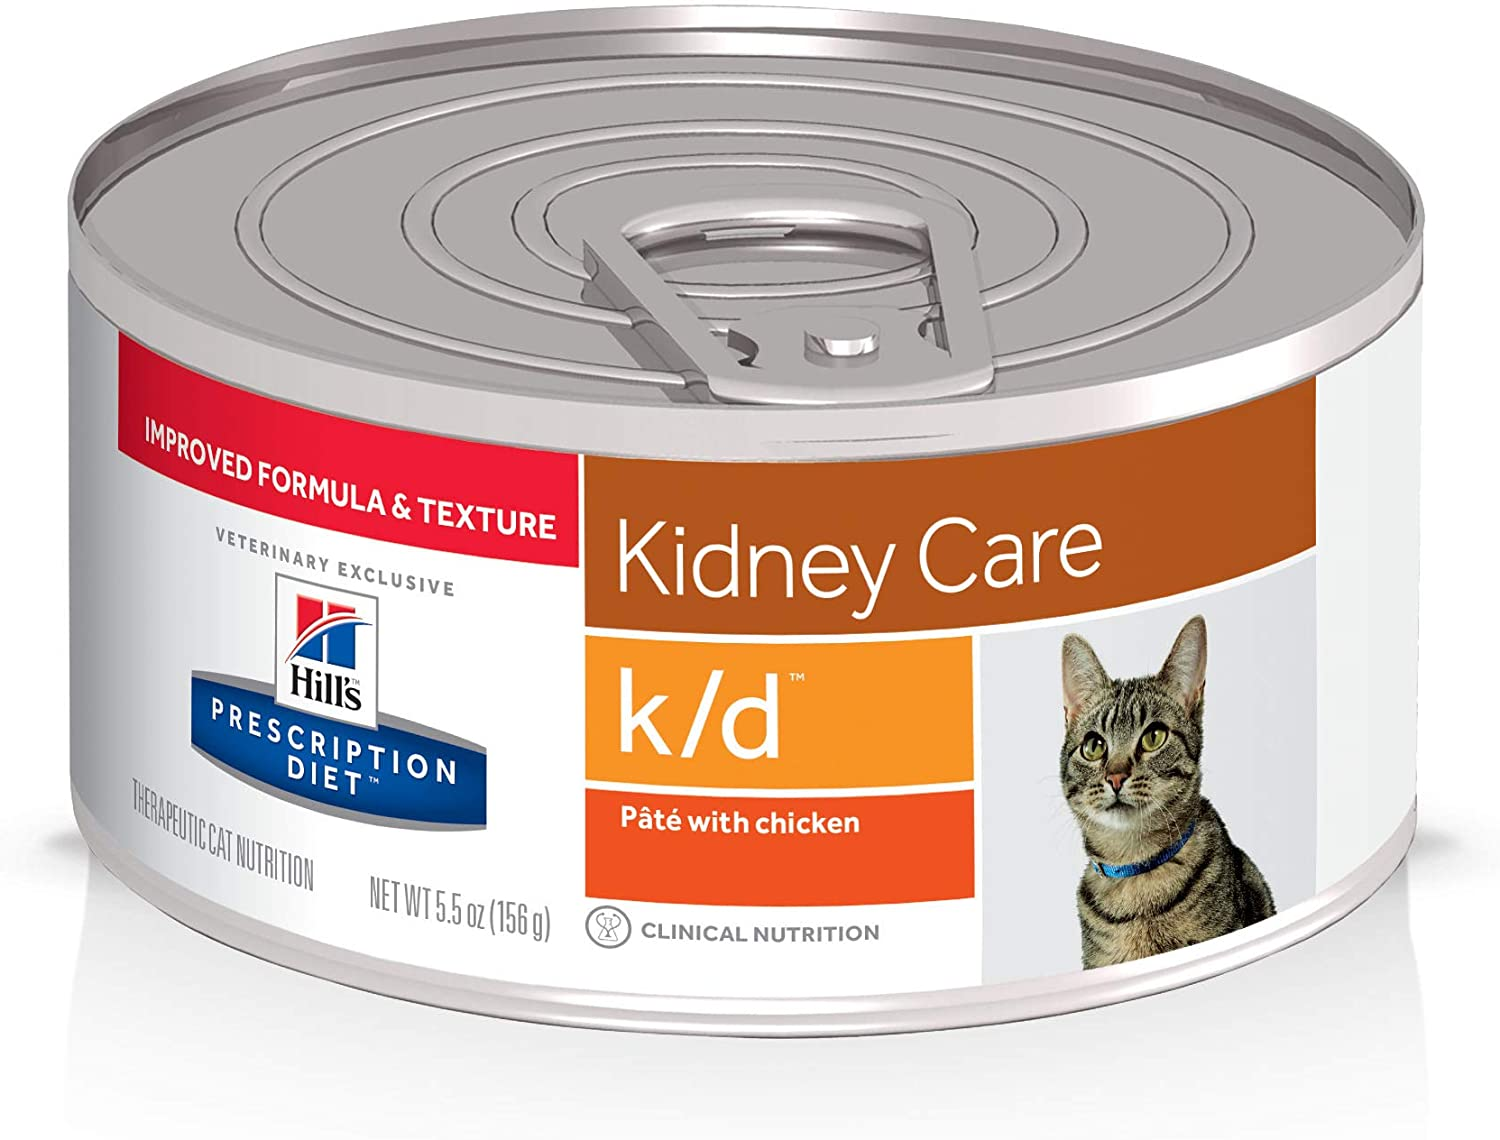 Hill's Prescription Diet k/d Kidney Care with Chicken Wet Cat Food, Renal Food, 5.5 oz. Cans, 24 Pack